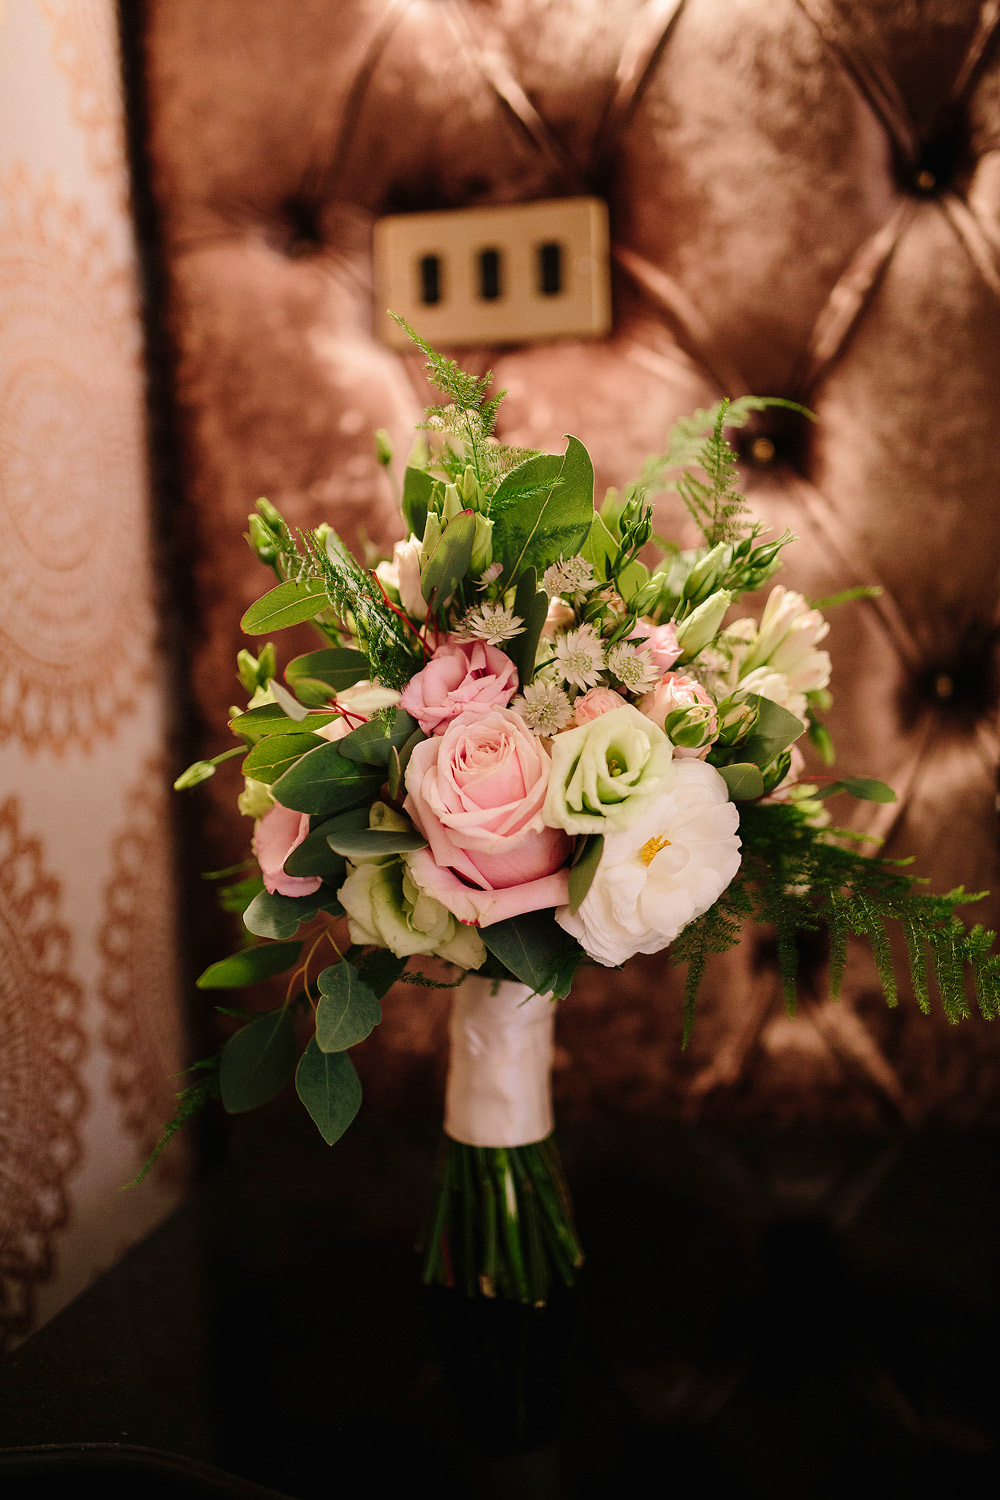 The bridal bouquet looks beautiful with all different flowers.